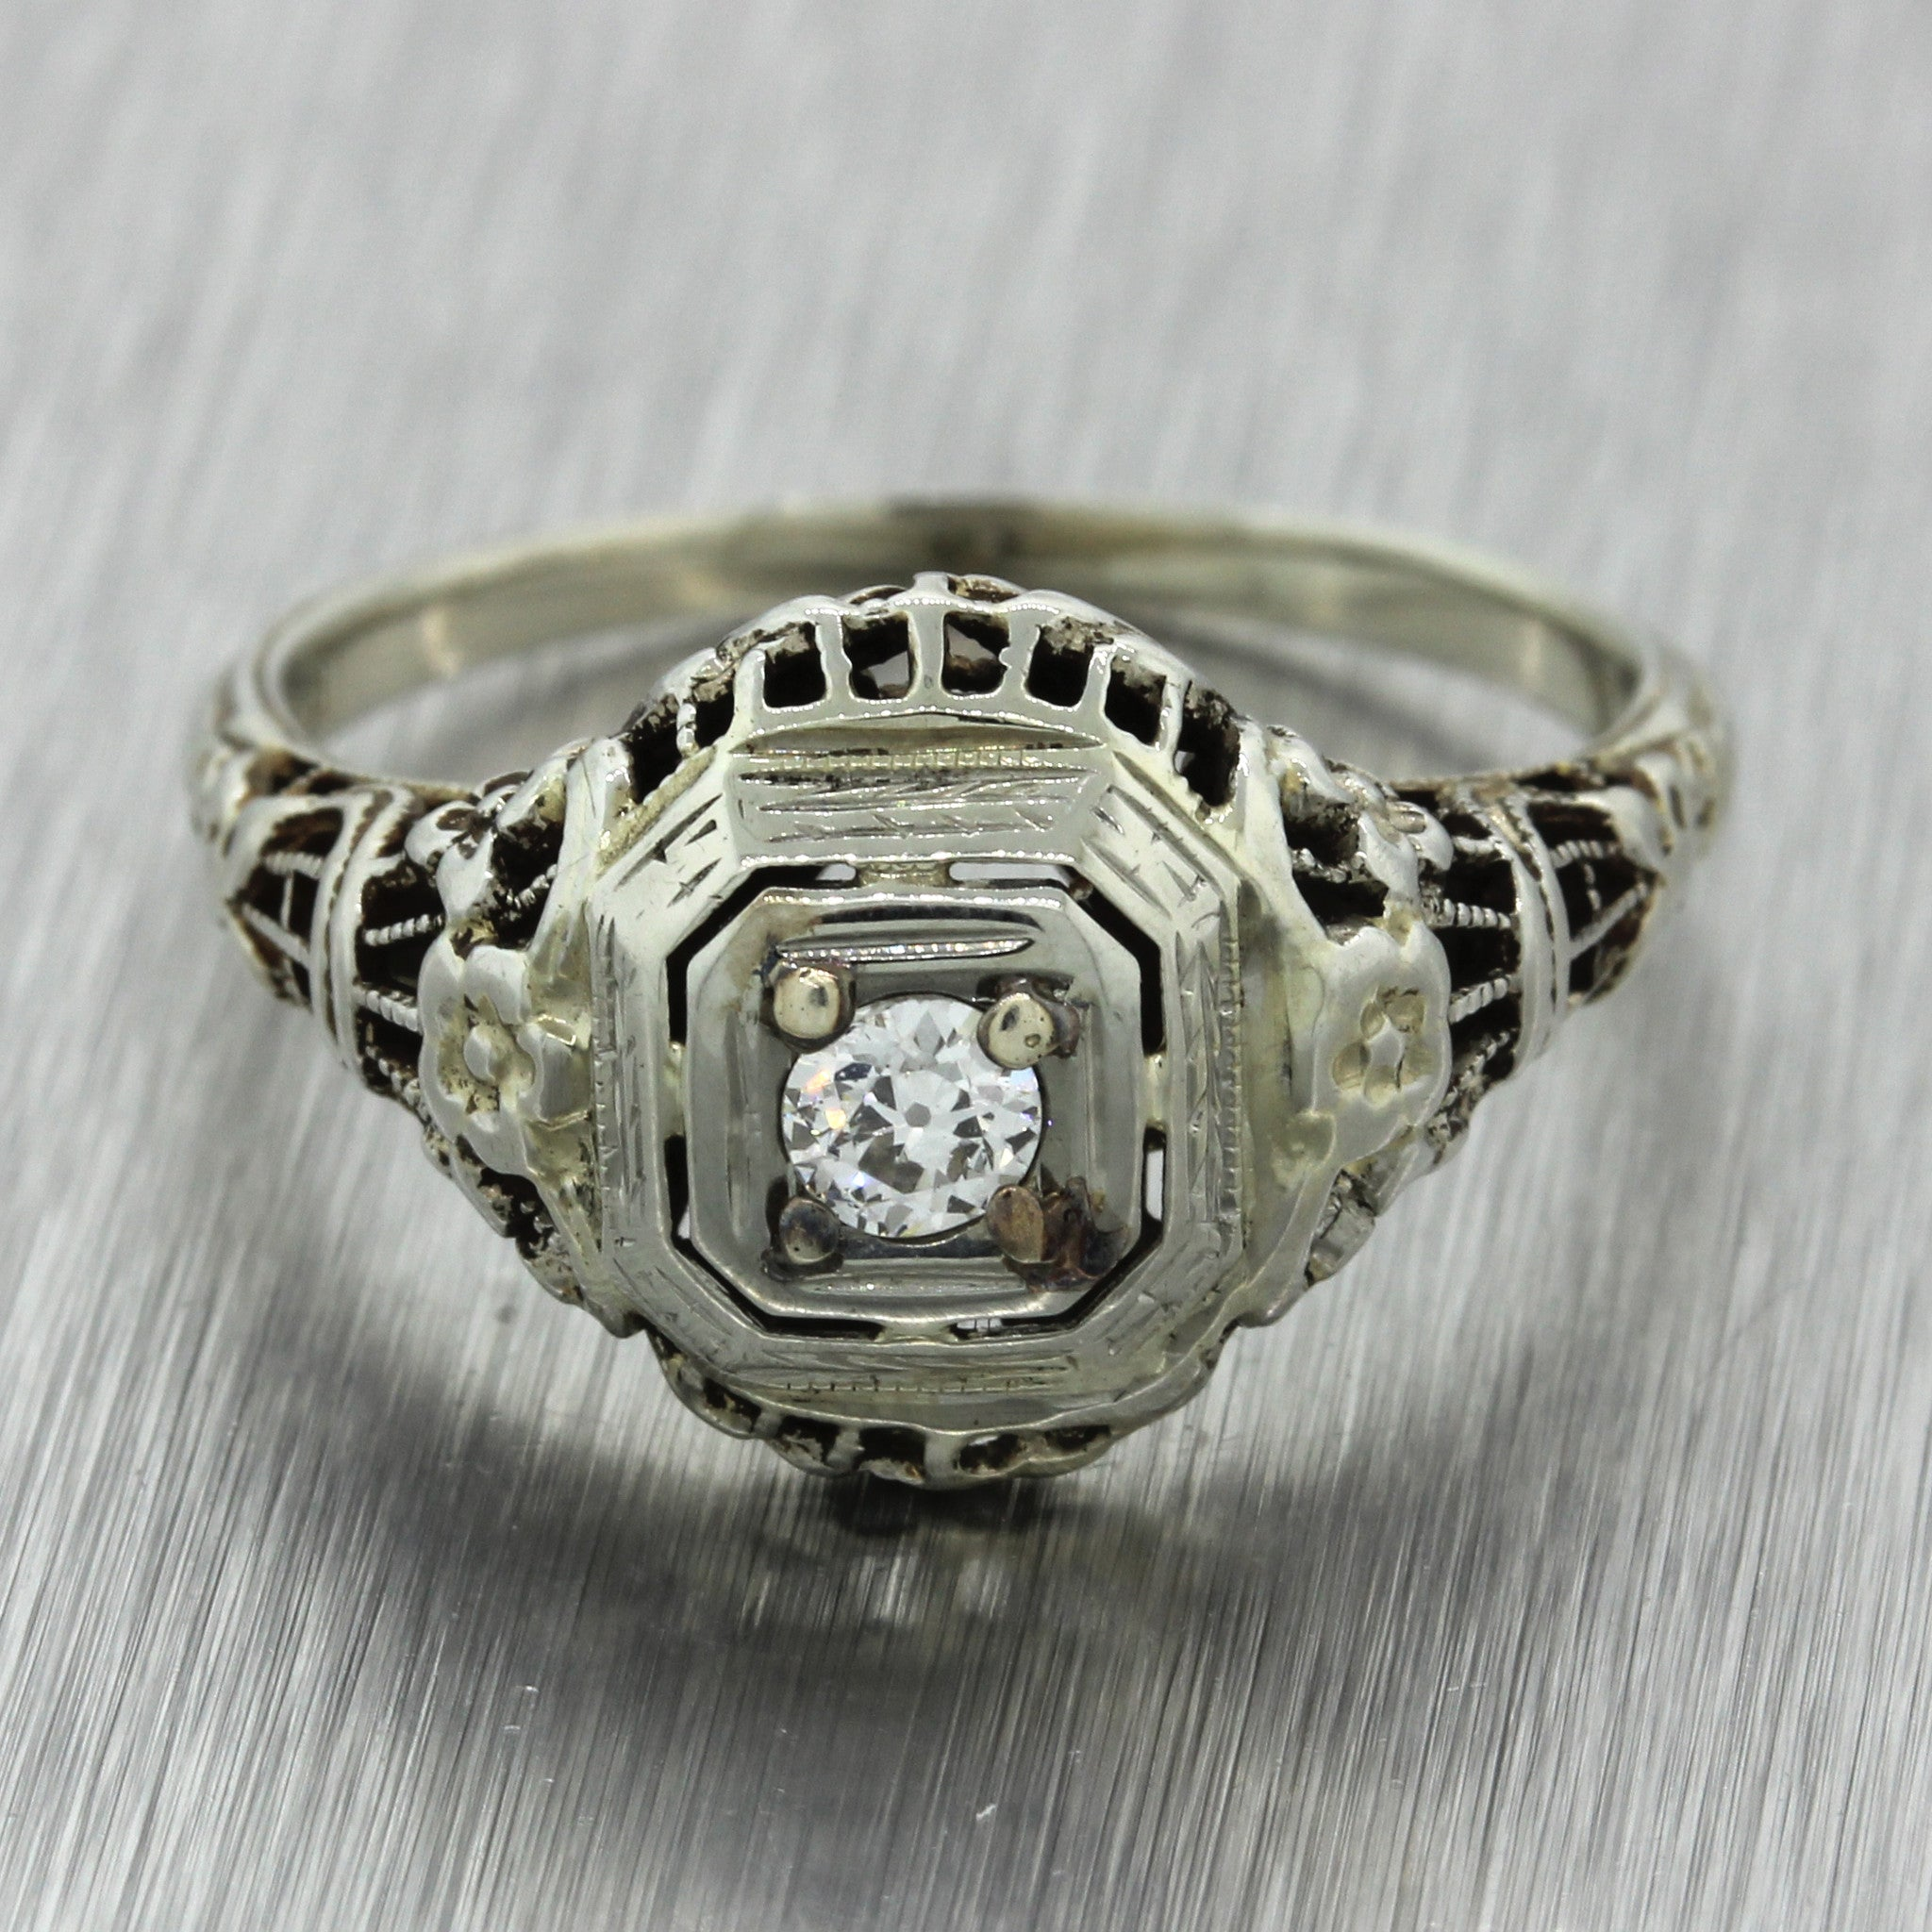 1930s Antique Art Deco 18k Solid White Gold .15ct Diamond Engagement Ring